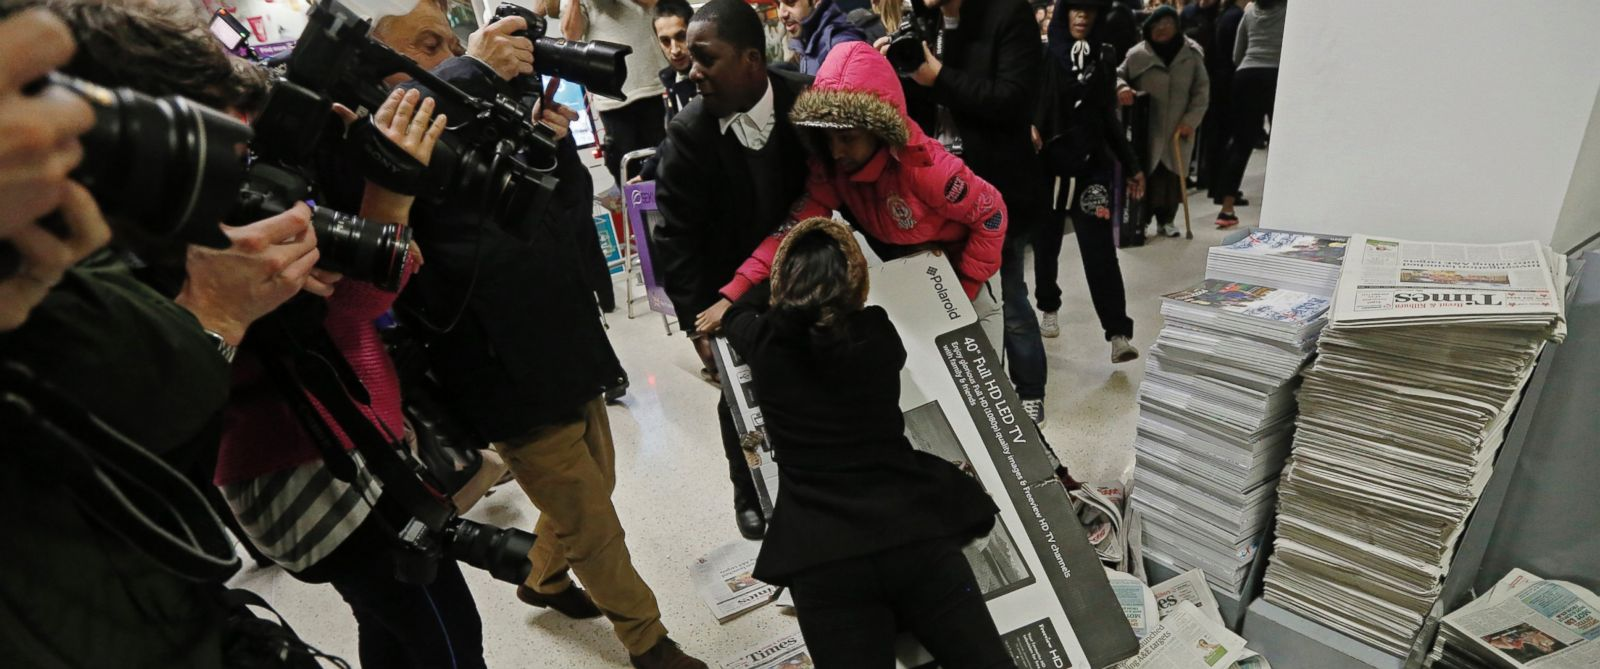 "PHOTO: Shoppers wrestle over a television as they compete to purchase retail items on ""Black Friday"" at an Asda superstore in Wembley, north London November 28, 2014."